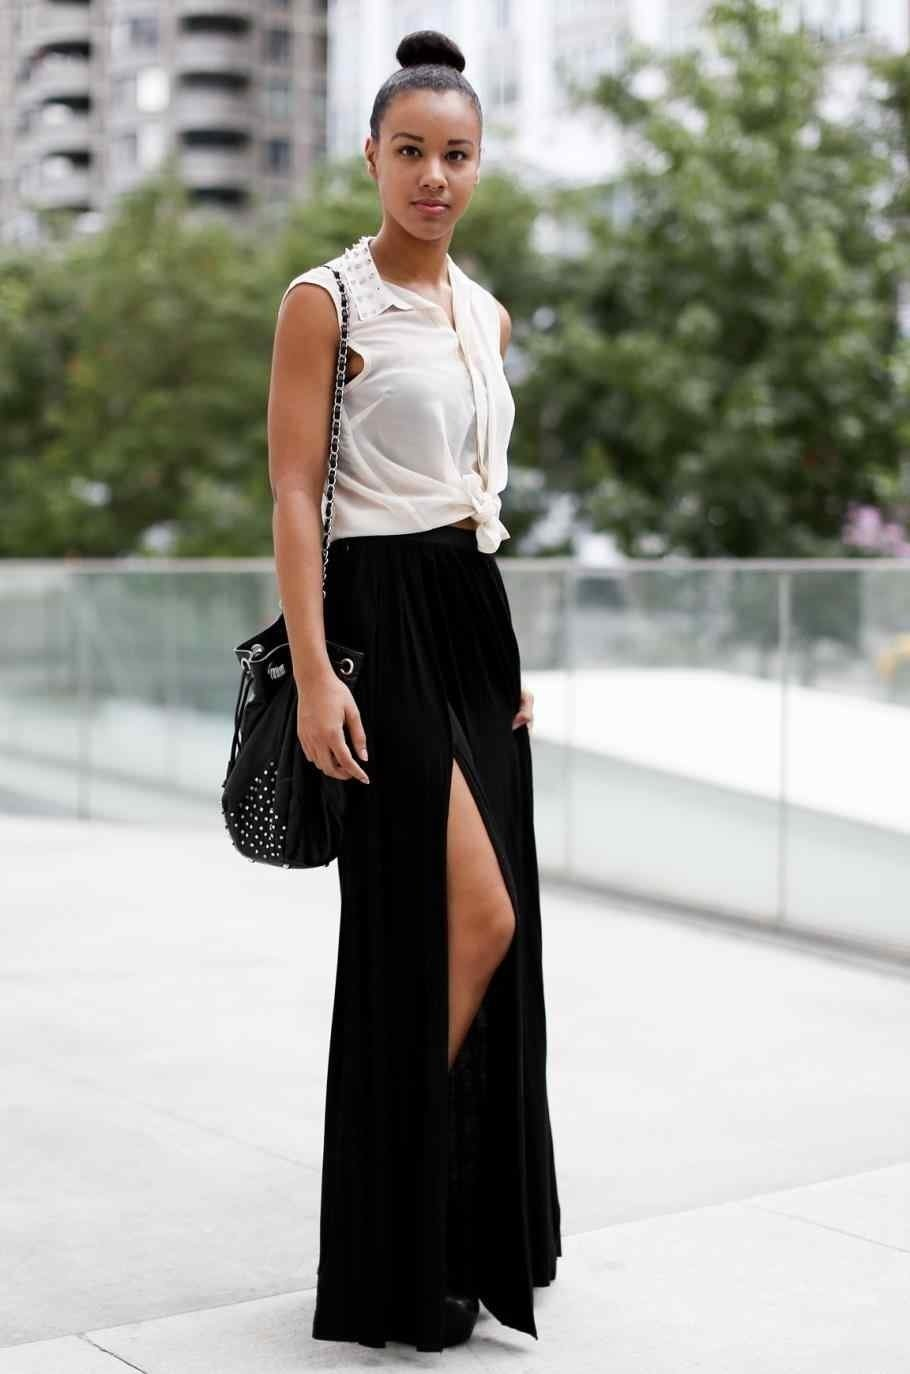 10 Awesome Long Black Skirt Outfit Ideas rhjustthedesigncom what summer edition u muslim girlrhmuslimgirlcom 2020